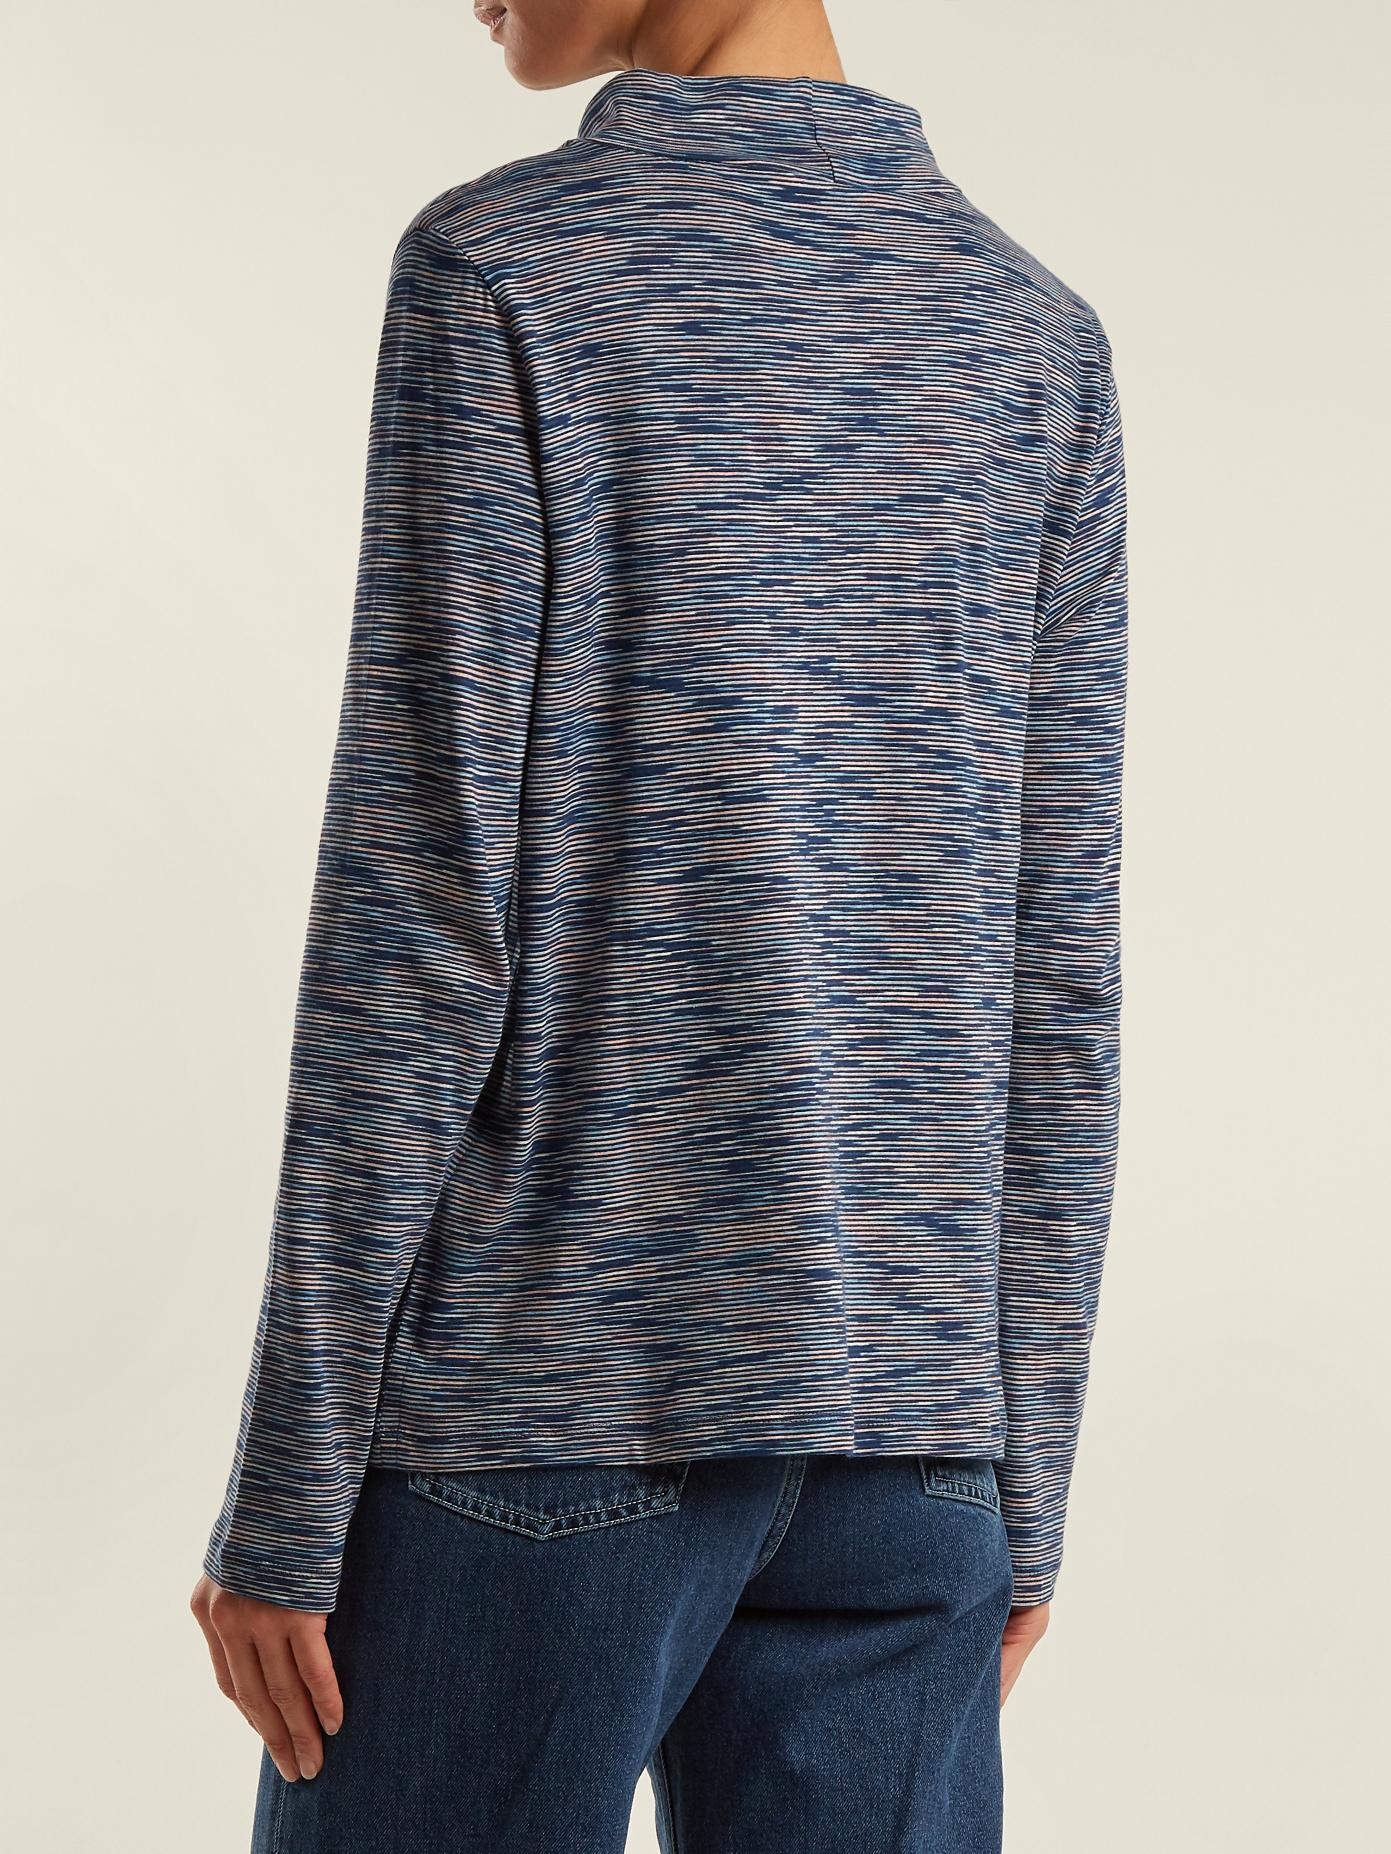 High-neck space-dye cotton-jersey top A.P.C. Buy Cheap Footlocker Finishline From China Free Shipping Low Price VS7ManzTb